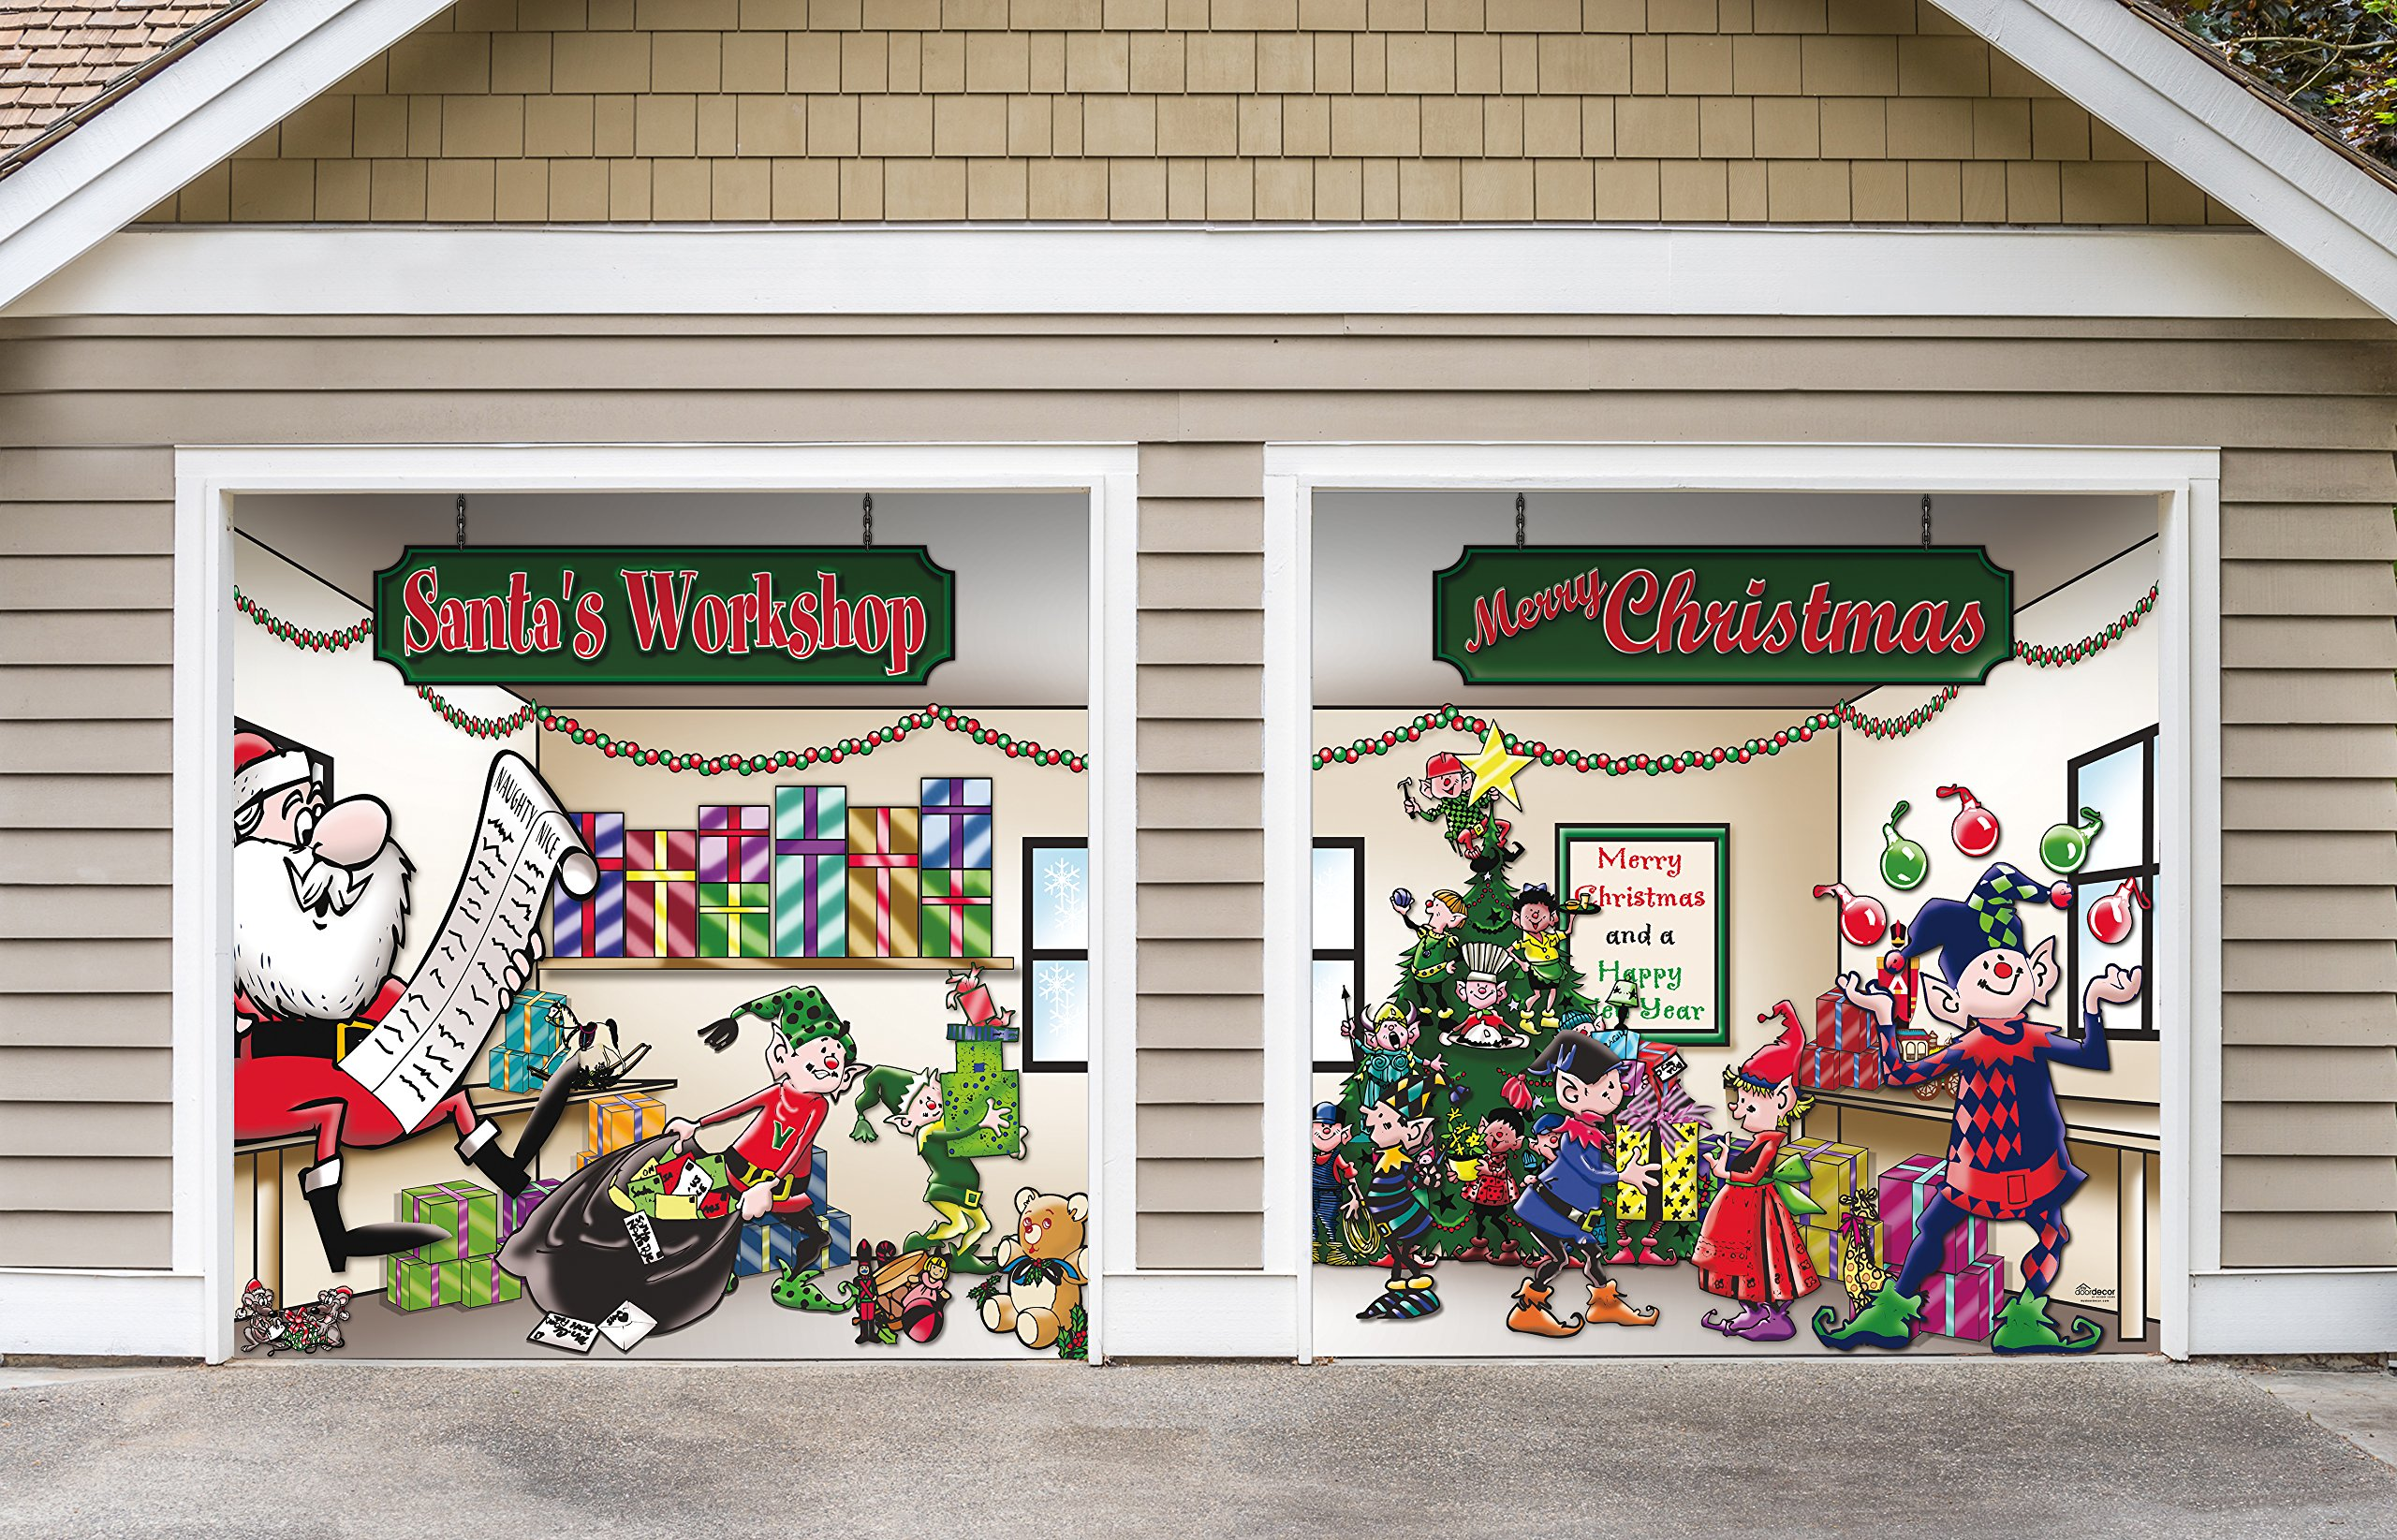 Outdoor Christmas Holiday Garage Door Banner Cover Mural Décoration - Santa's Workshop - Outdoor Holiday 2 Car Split Garage Door Banner Décor Sign , Two 7'x 8' Graphic Kits